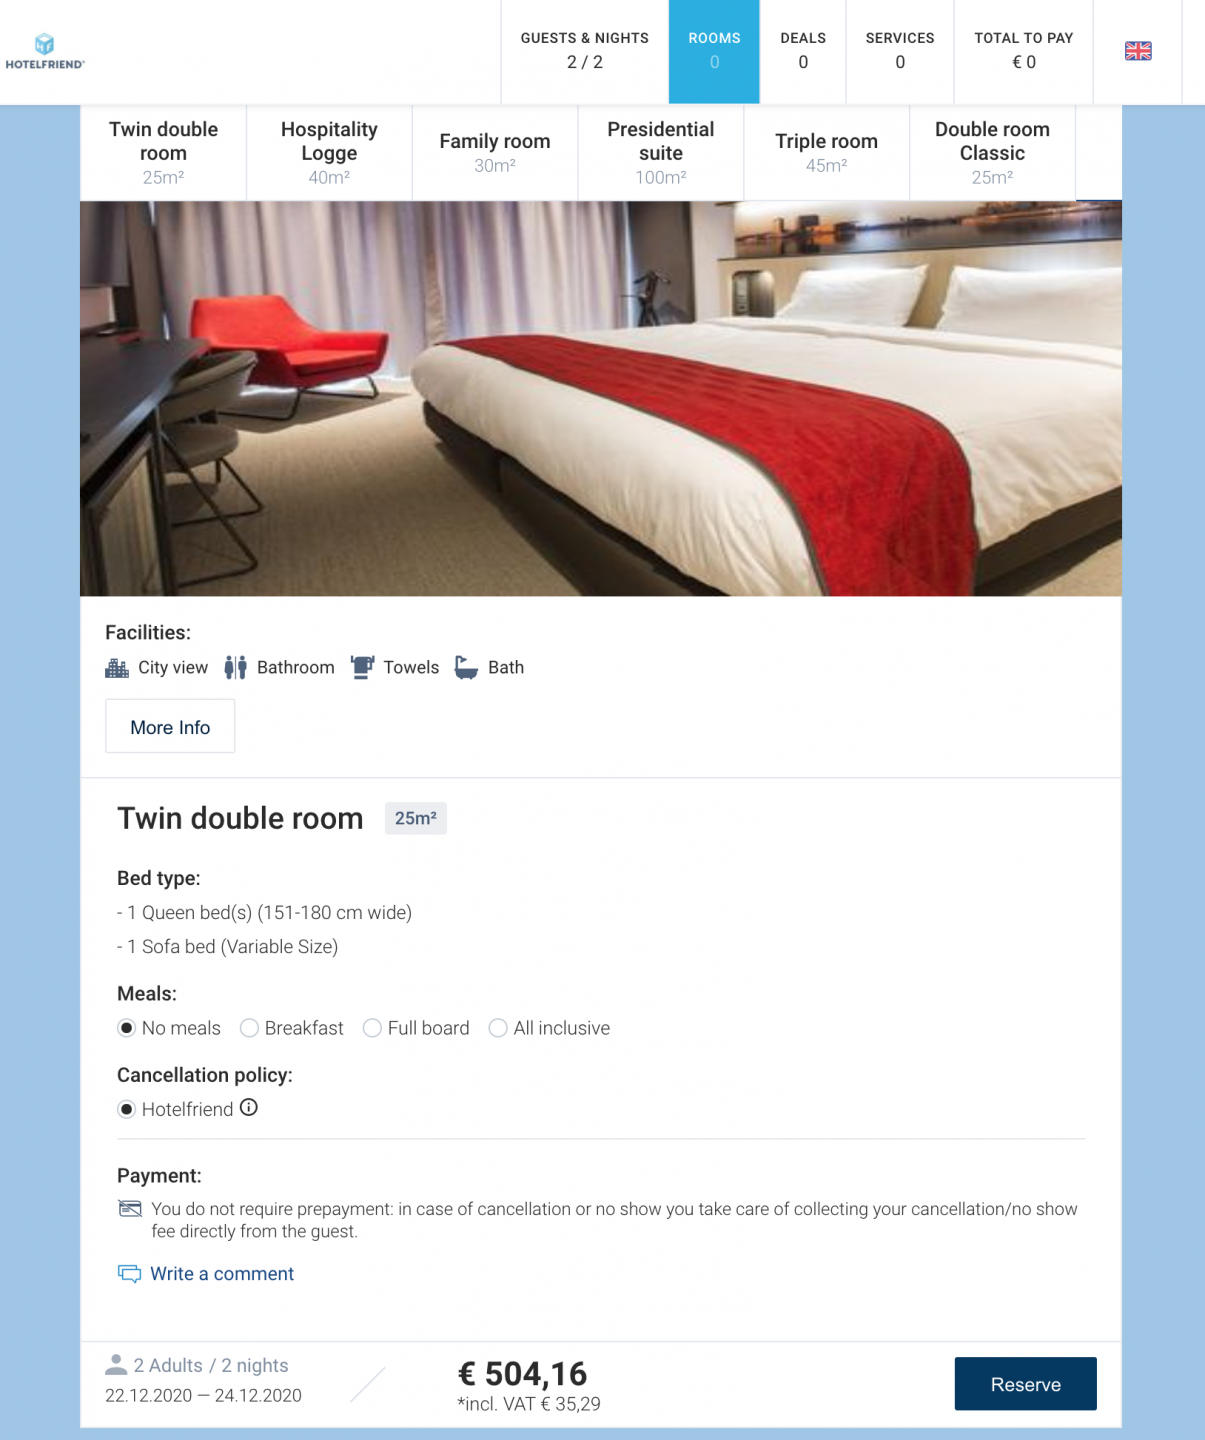 HotelFriend Booking Engine